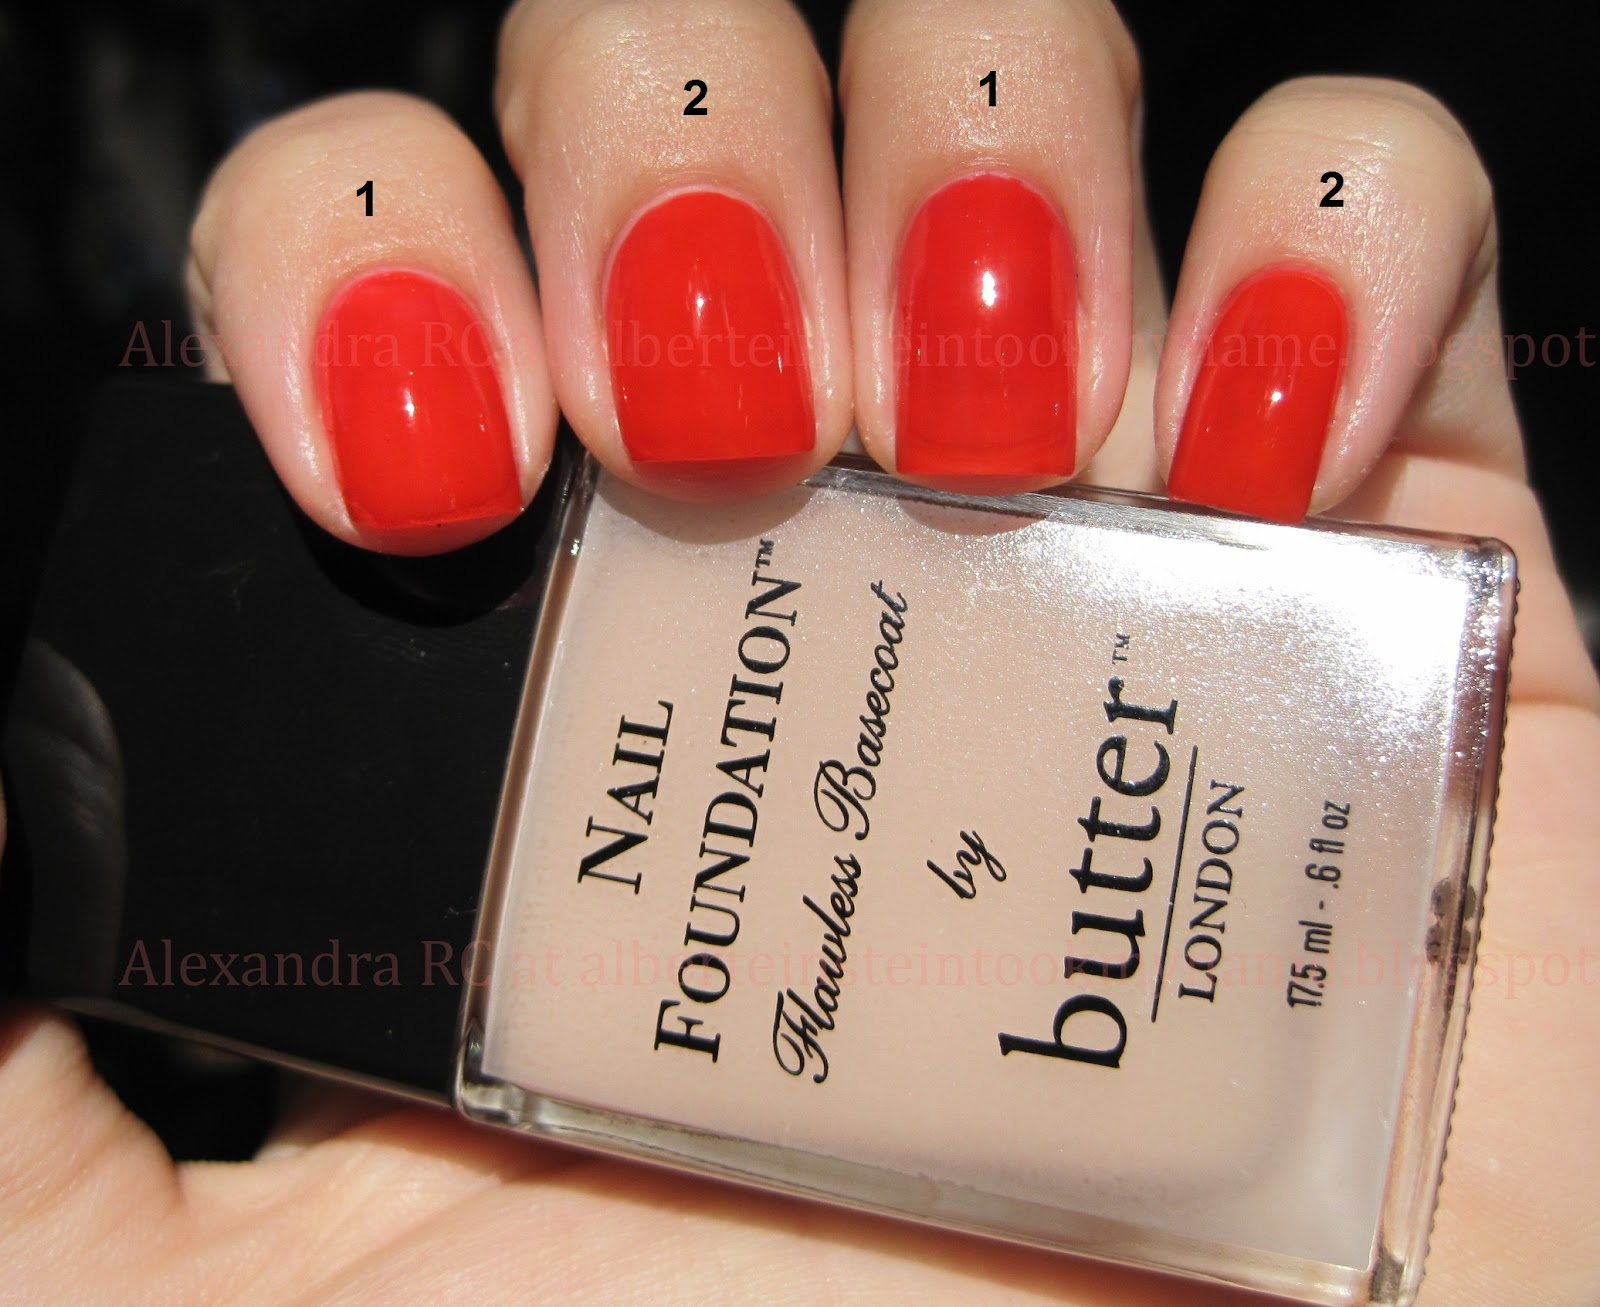 Butter London Nail Foundation - Sparkly Vernis